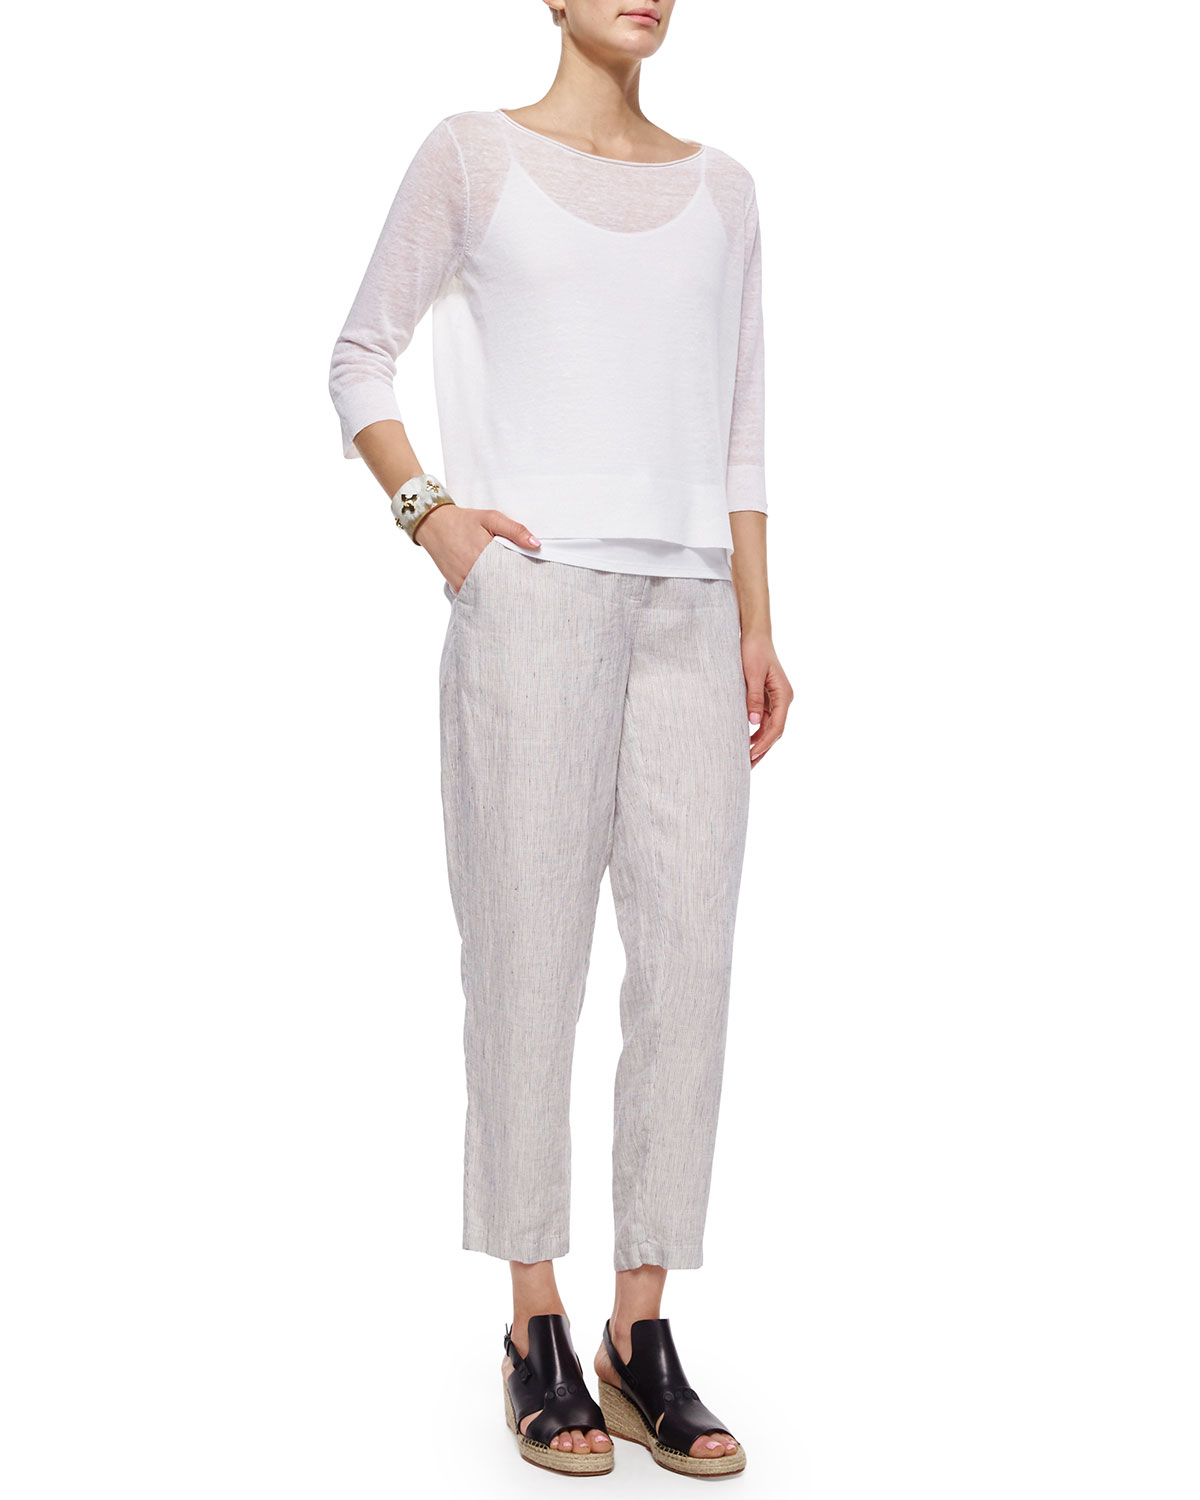 Eileen fisher Slouchy Organic Linen Ankle Pants in Gray | Lyst